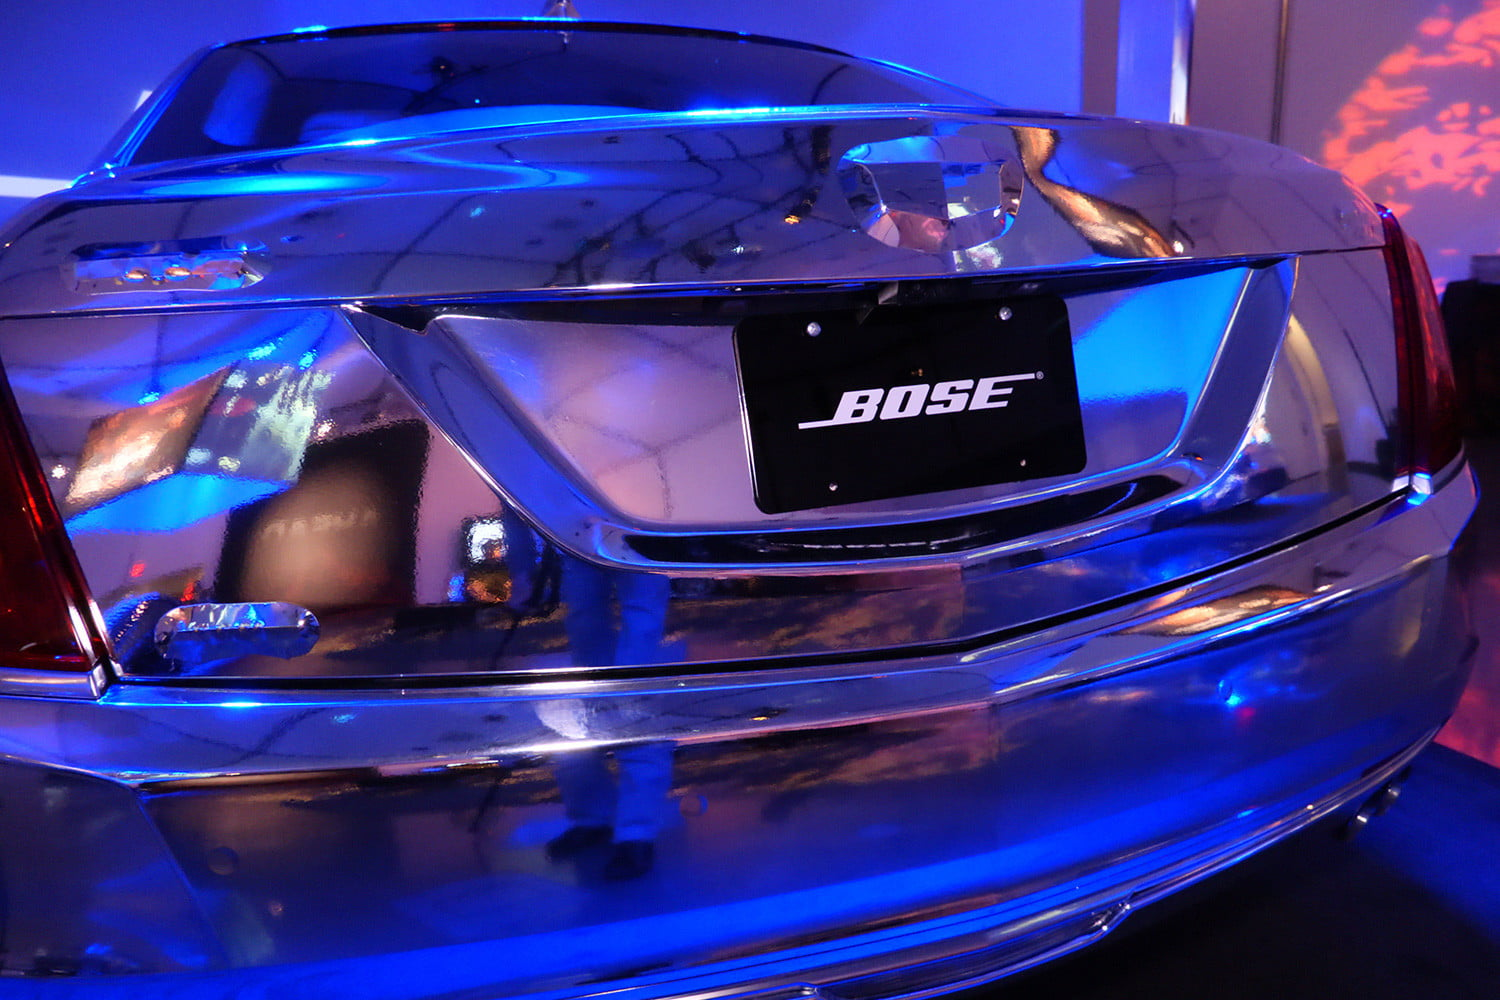 new bose car audio systems affordable sound great how is making advanced